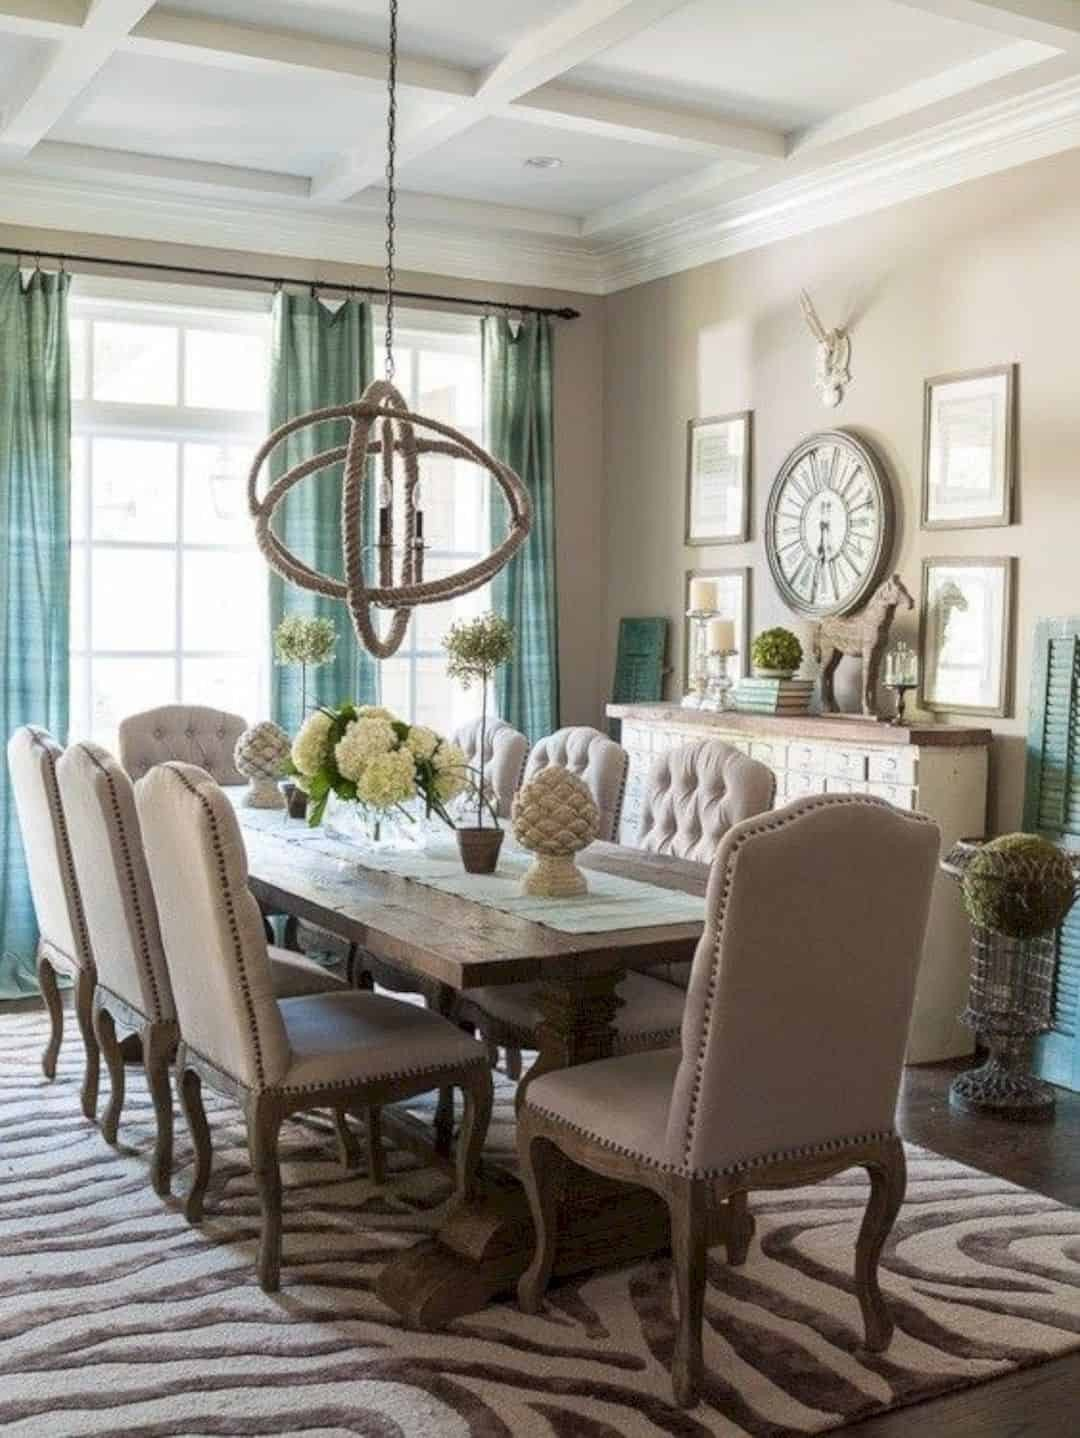 Wall Decor for Dining Room Fresh 16 Dining Room Wall Decorating Ideas